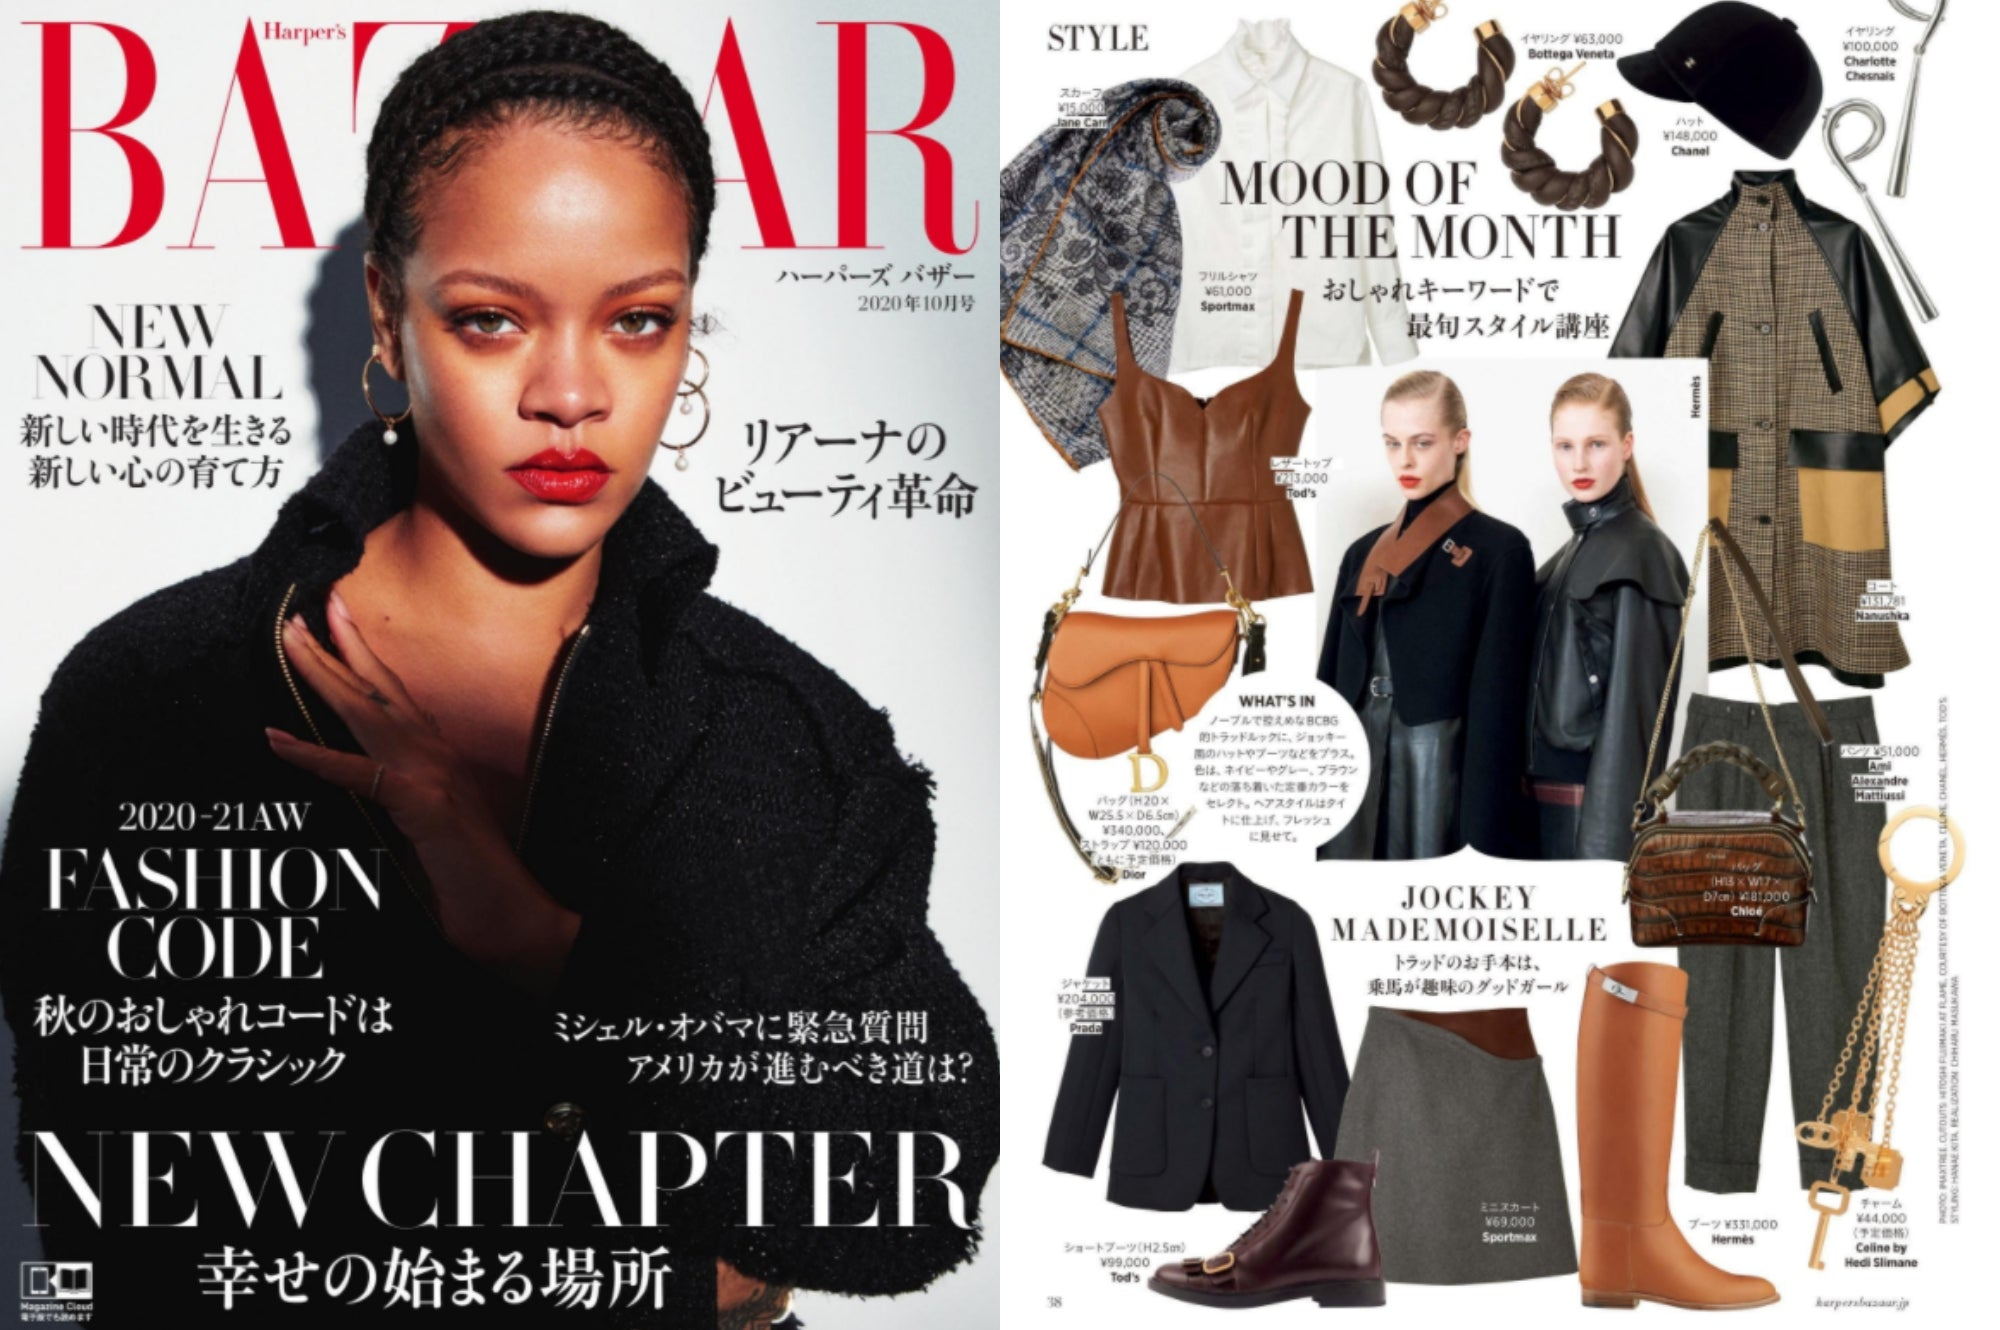 JANE CARR - HARPER'S BAZAAR JAPAN October 2020